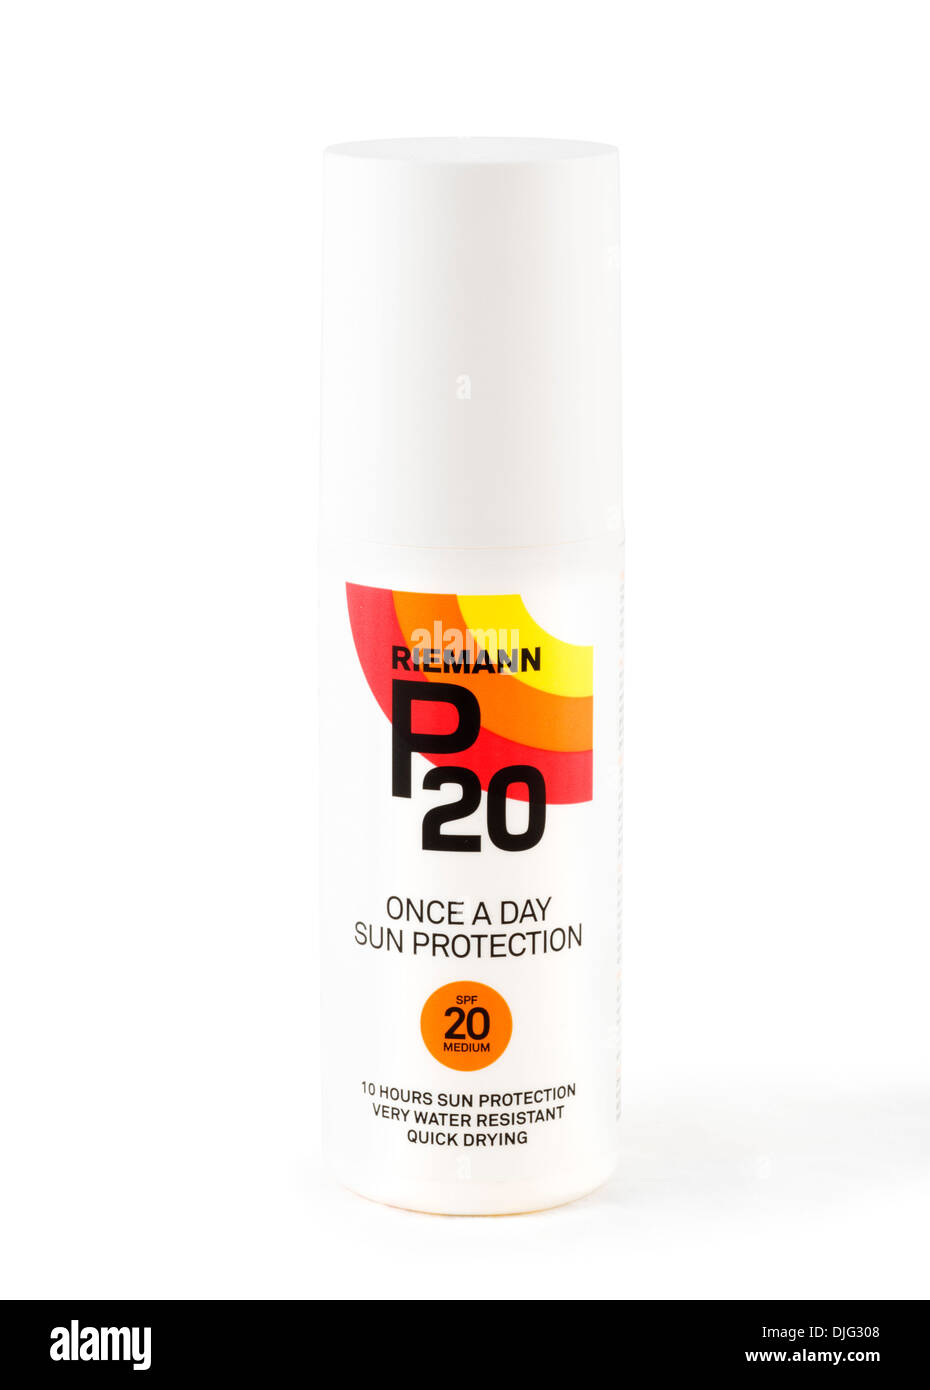 Riemann P20 once a day suntan lotion - Stock Image